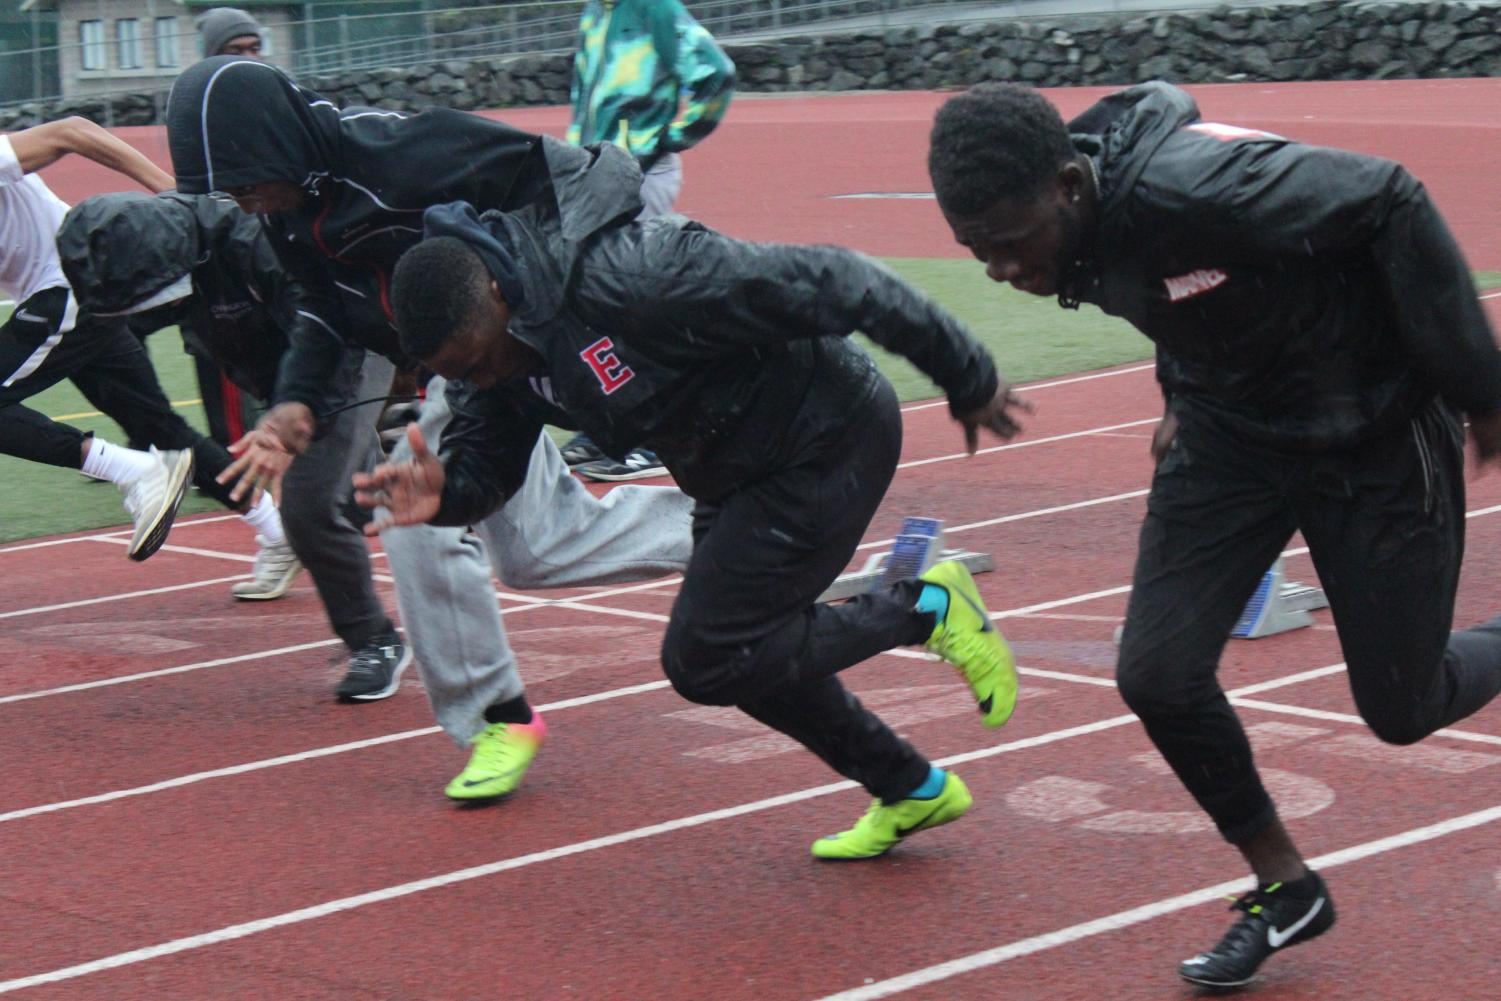 Dimeji Adekanbi (second from right) runs the 100 meter at track practice.